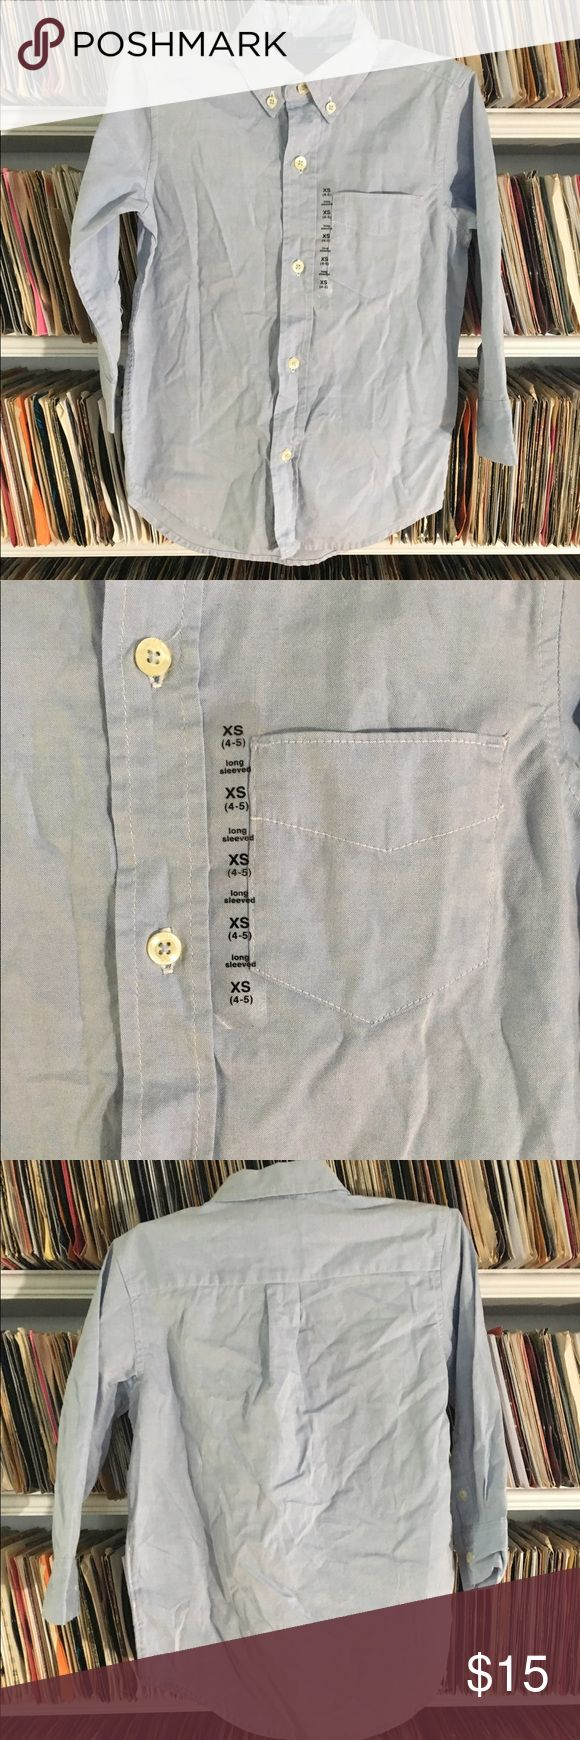 Gap Kids long sleeve oxford button down shirt blue This is a brand new blue button down shirt from the gap. It's a size XS 4-5. Its brand new with the original sticker but the hang tag was removed. Gap Shirts & Tops Button Down Shirts